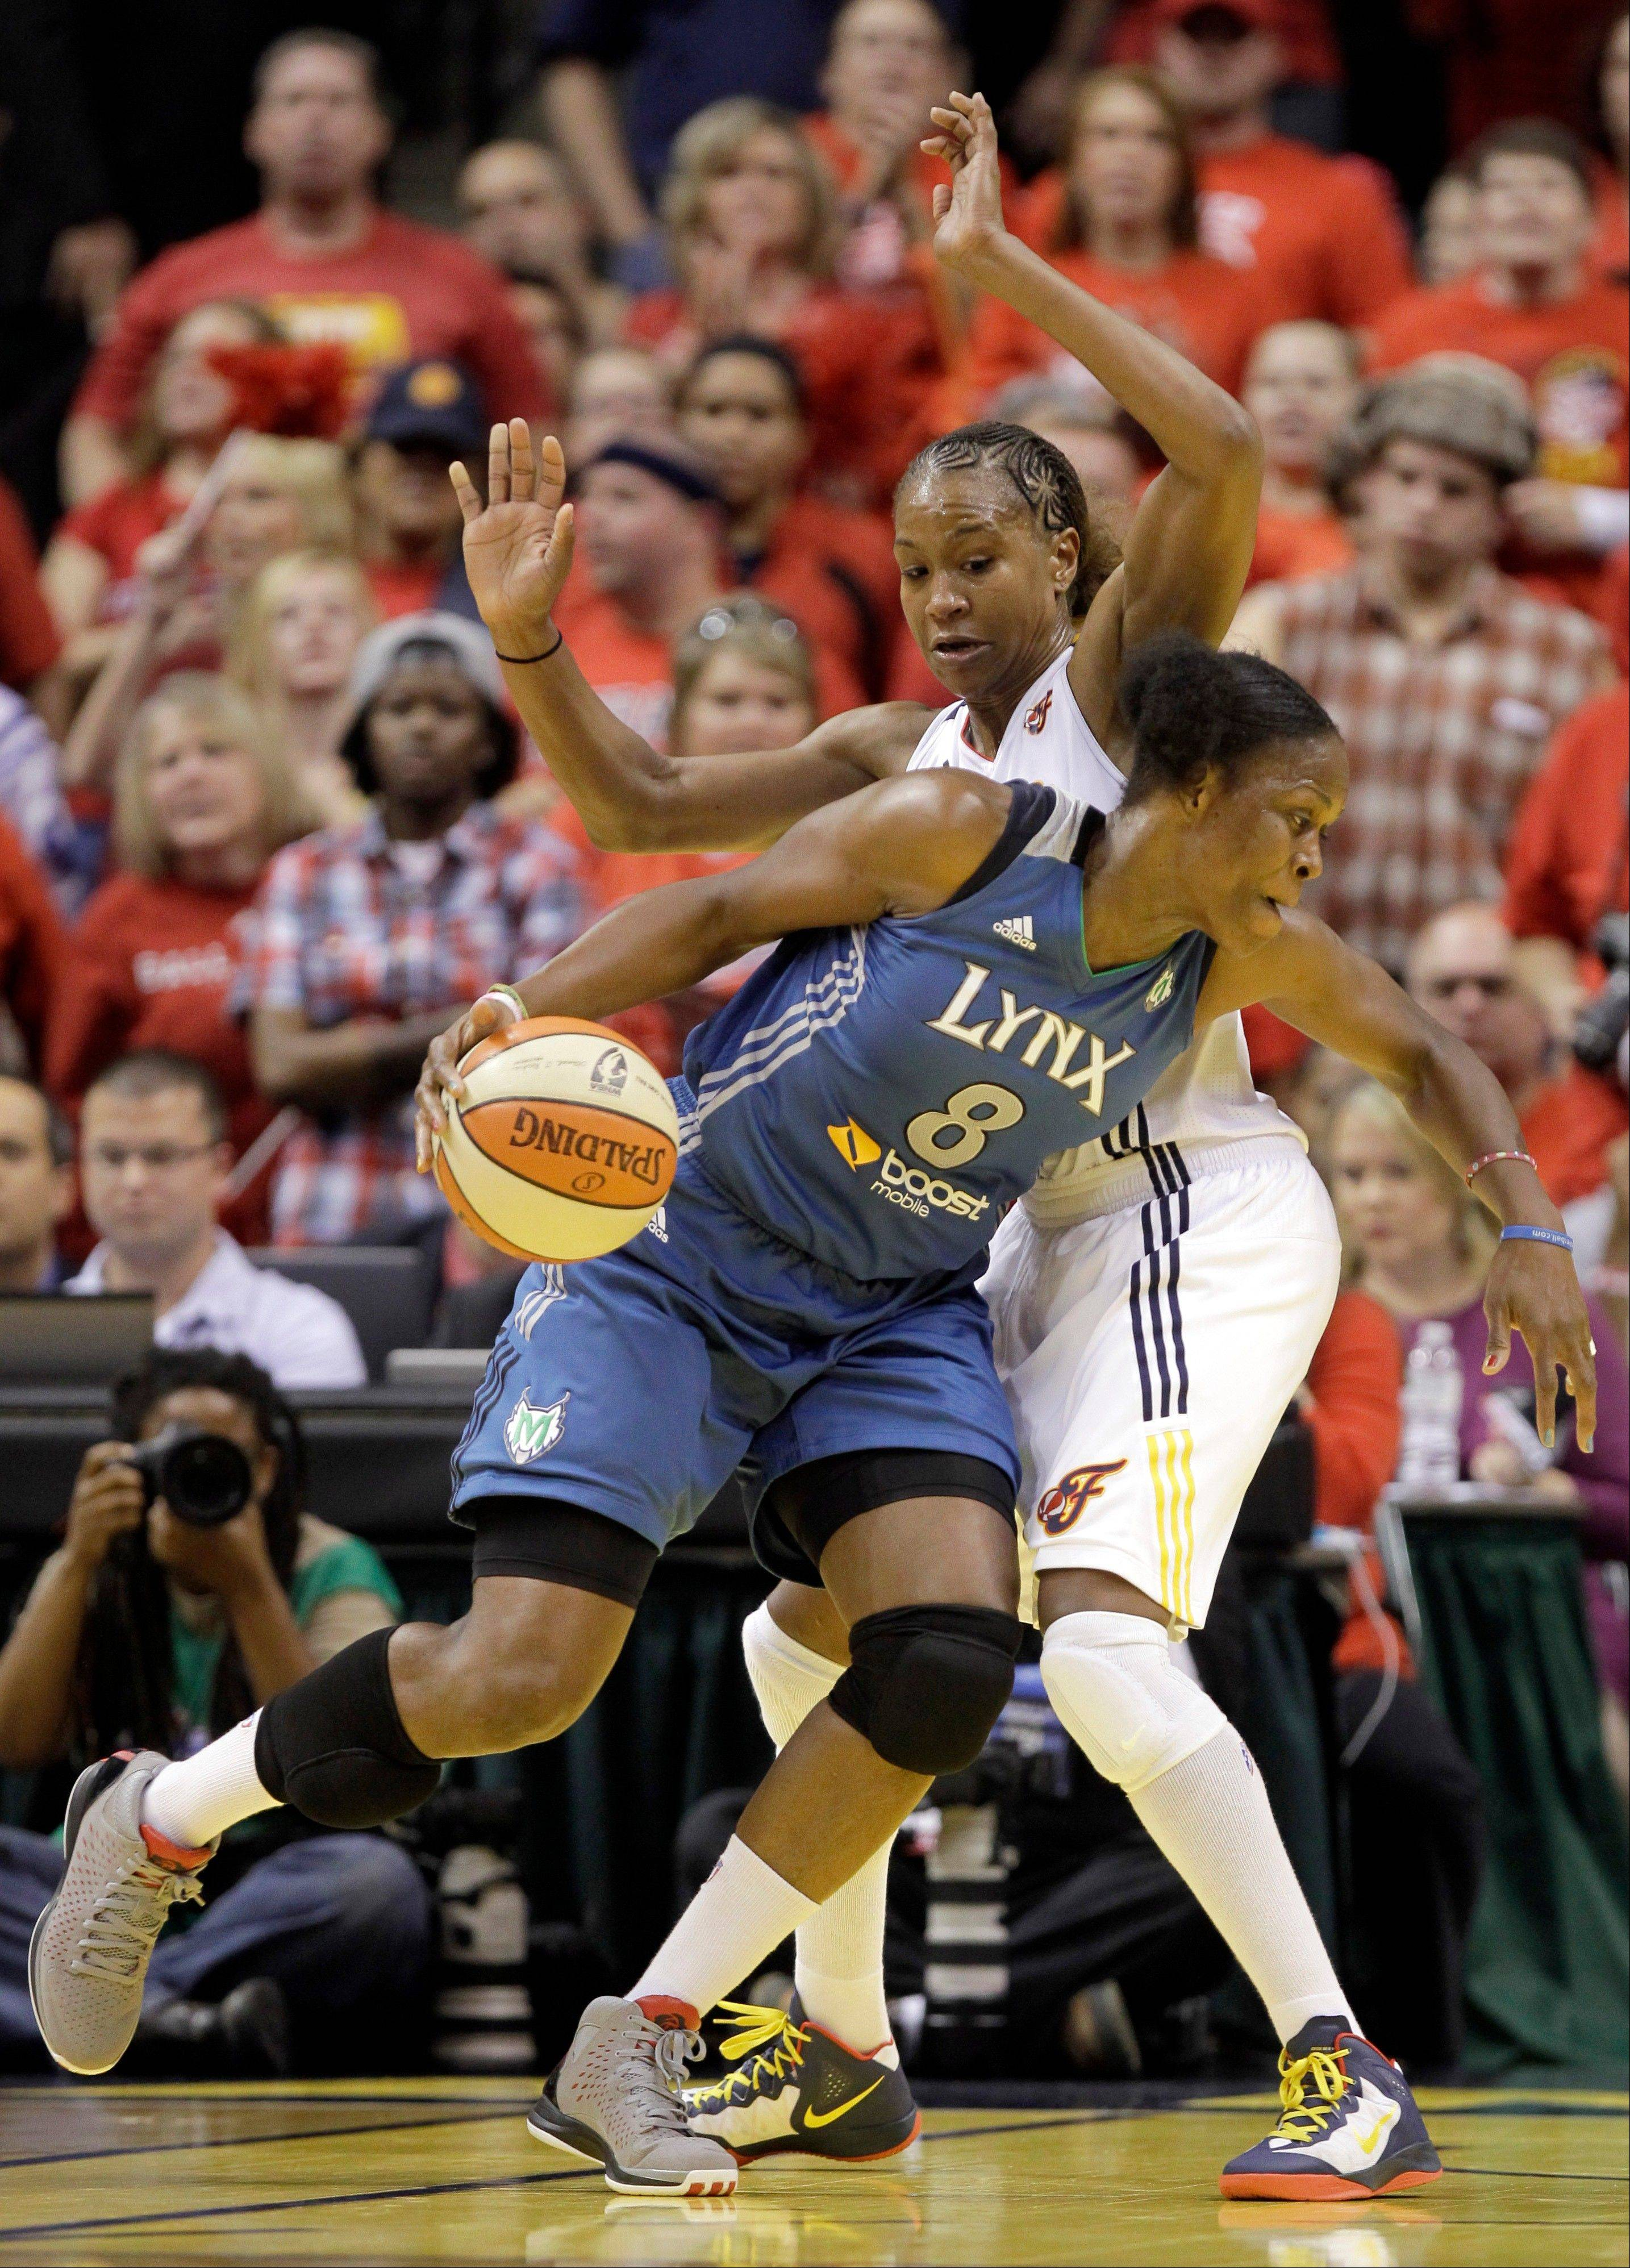 Minnesota Lynx forward Taj McWilliams-Franklin, front, tries to get around Indiana Fever forward Tamika Catchings in the first half of Game Four of the WNBA basketball Finals in Indianapolis, Sunday, Oct. 21, 2012.